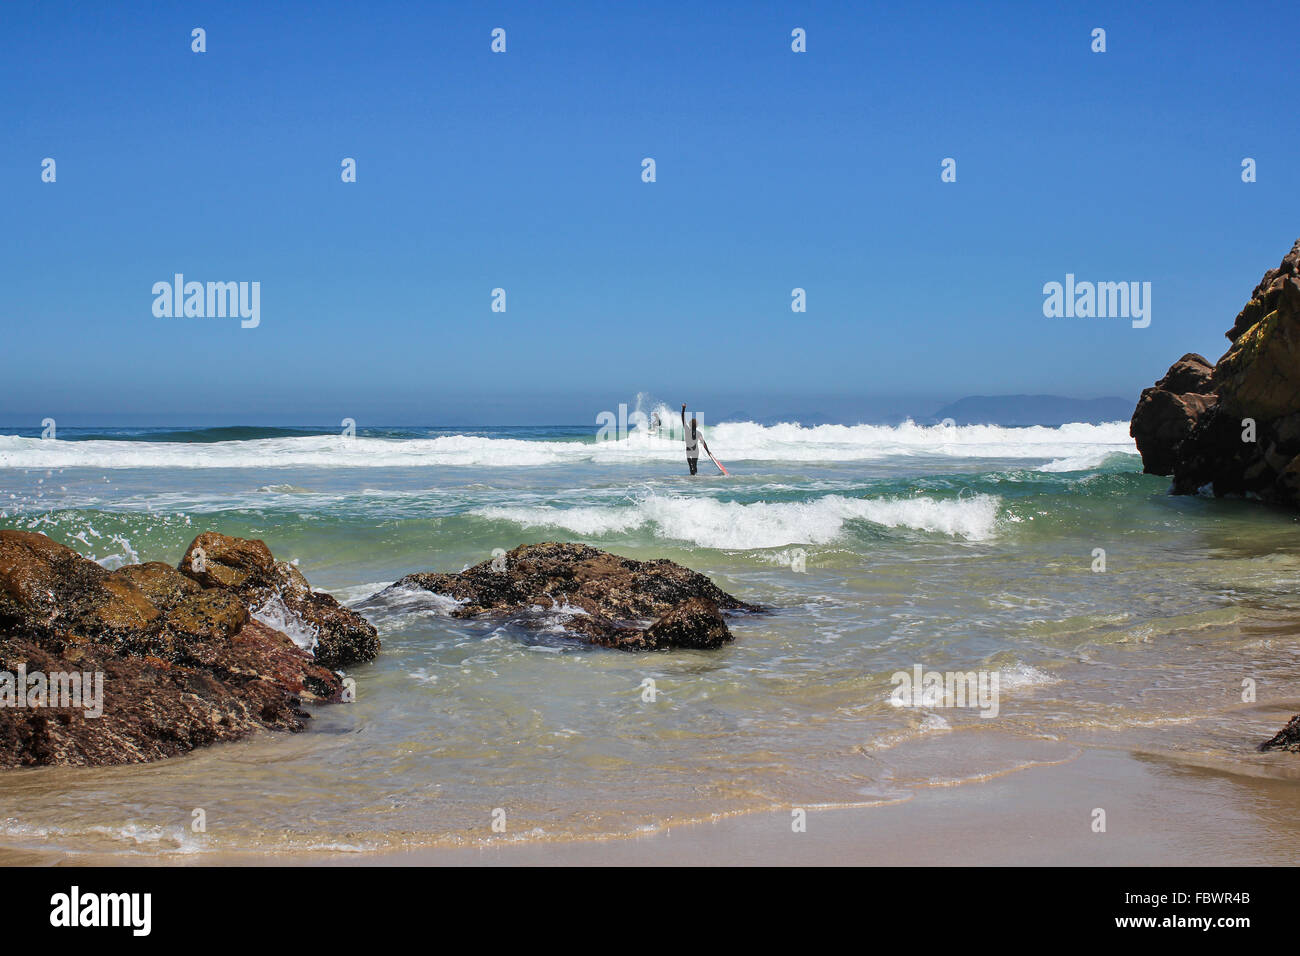 Surfers at a beach in sout africa - Stock Image